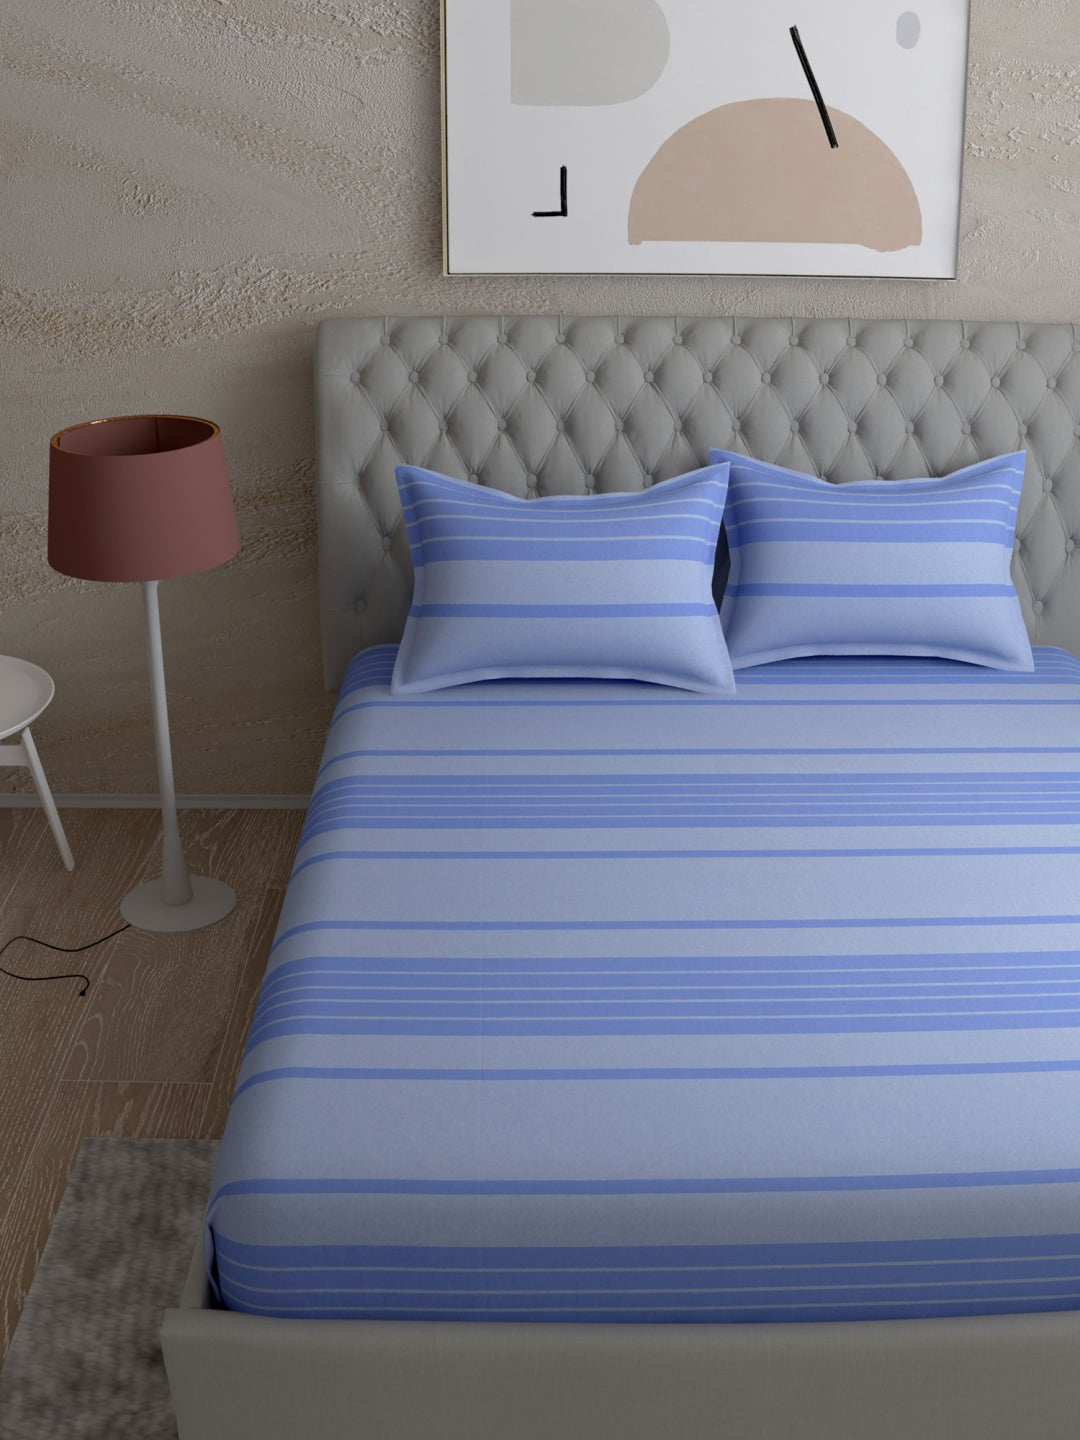 Black & Purple Microfiber Double comforter for Mild Winter